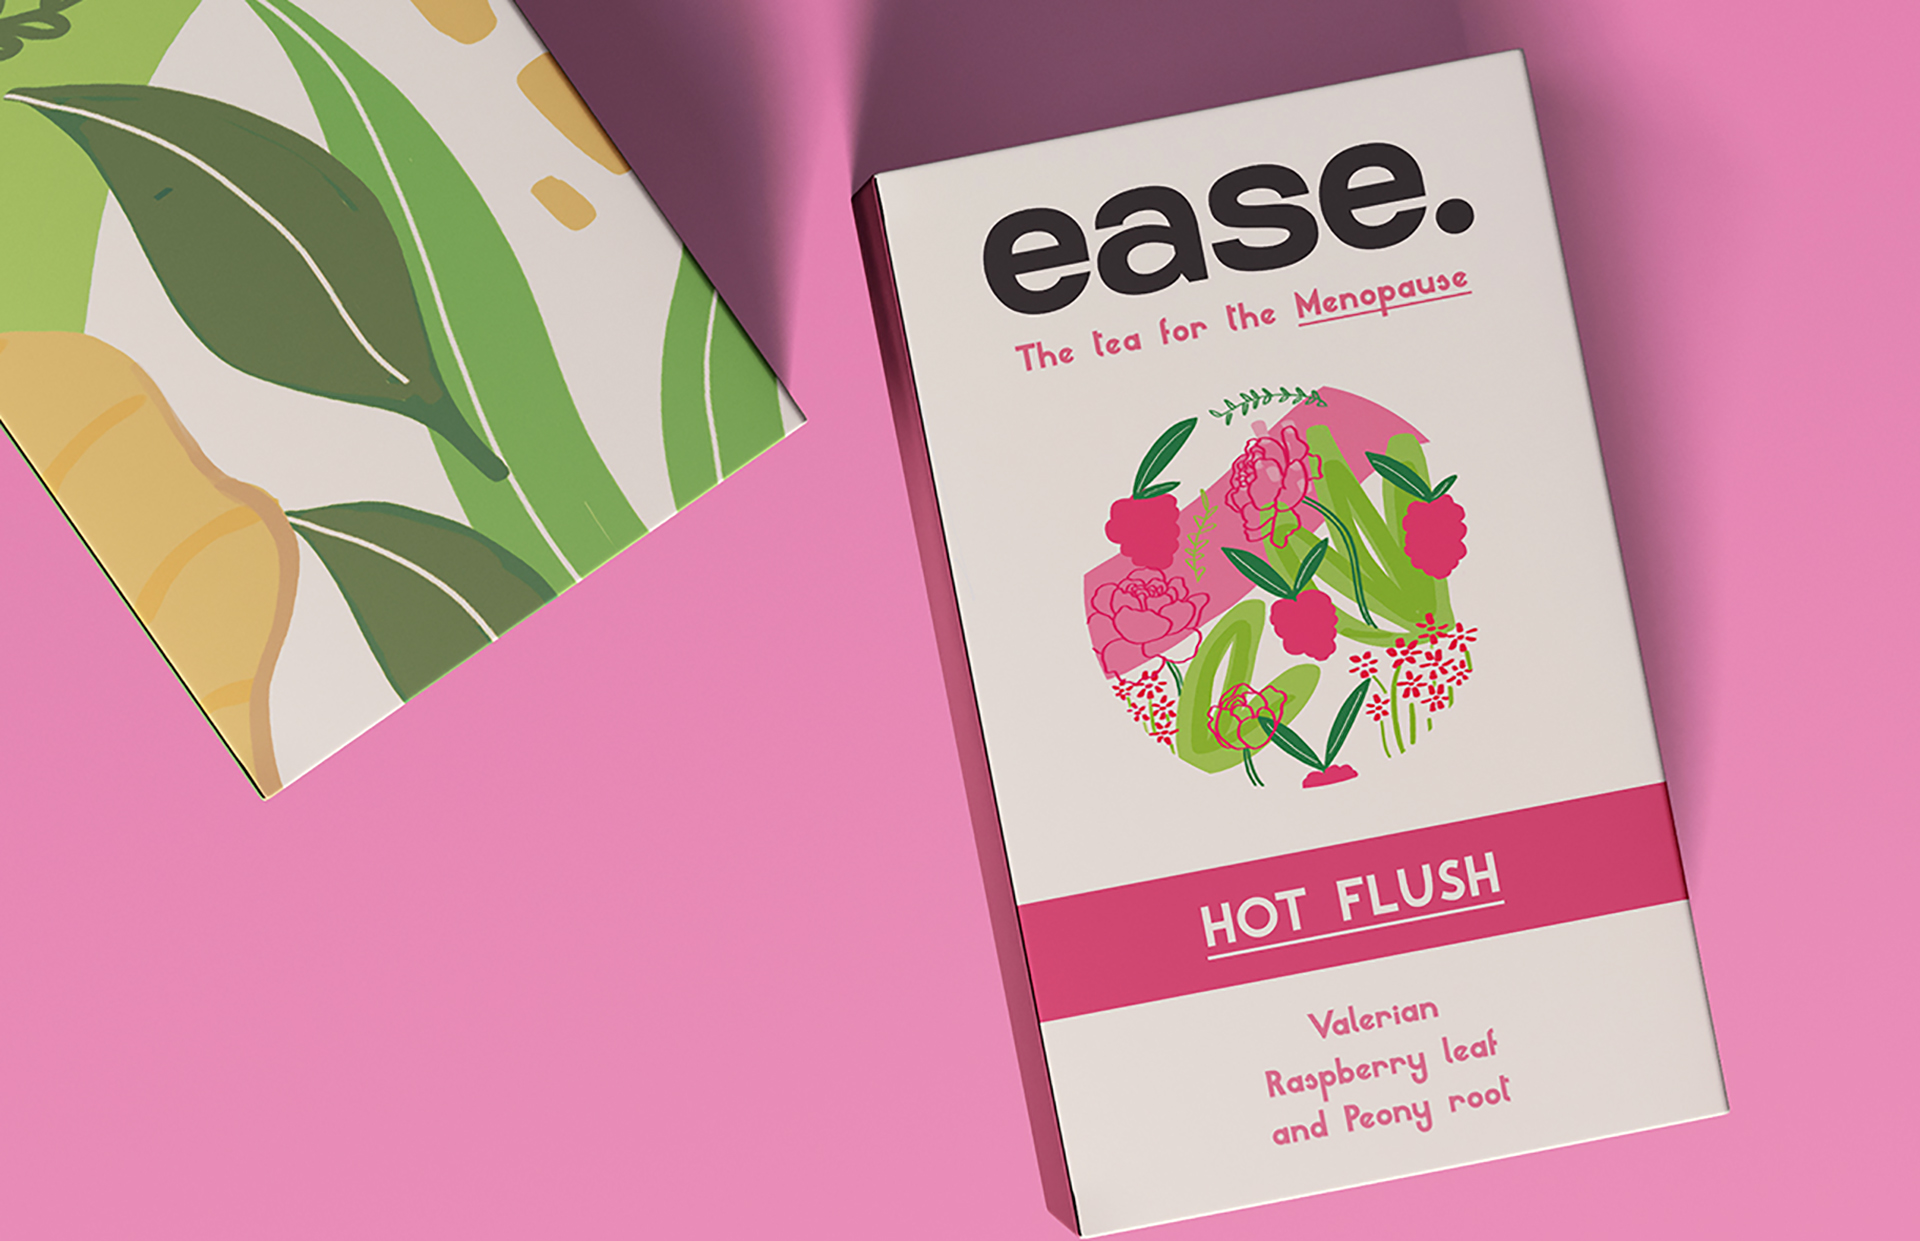 An image of the back and front of rectangular packaging box of tea. The back features an illustration of leaves and the front product information. These are laid on a pink background